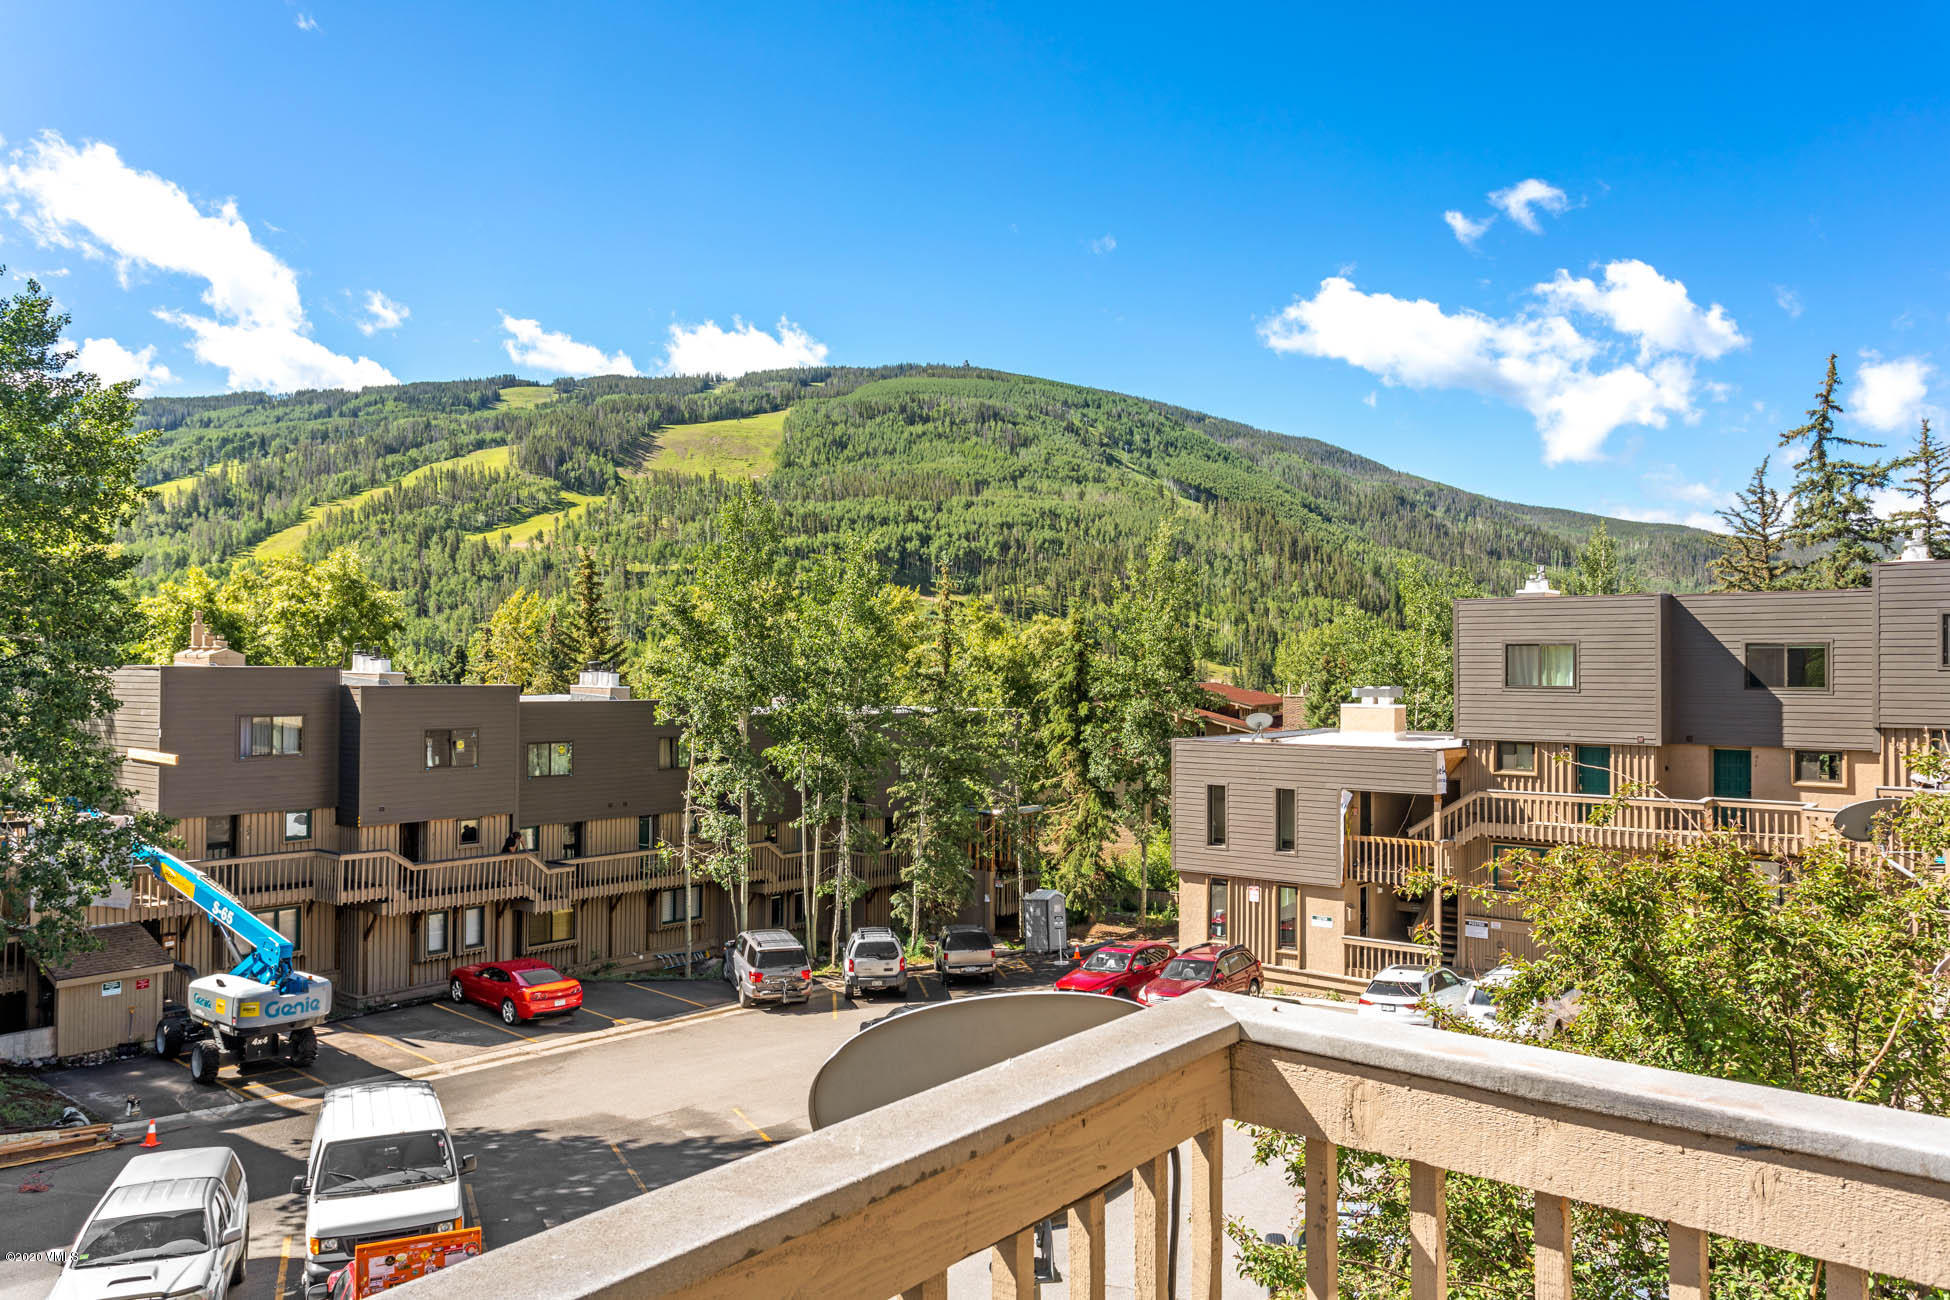 Looking for a Vail condo with ski slope views and a great location? This remodeled top floor, end unit, two level condo has it all. New Pella windows, plank wood flooring & stairs, Wolf 4 burner range, granite slab kitchen counters, concrete slab bathroom counters, slate walk-in shower, stacked rock fireplace, an all in one washer/dryer and low voltage lighting throughout. Located between 2 bus stops on free Town of Vail bus route it is ideal for locals and investors alike. See attached video.